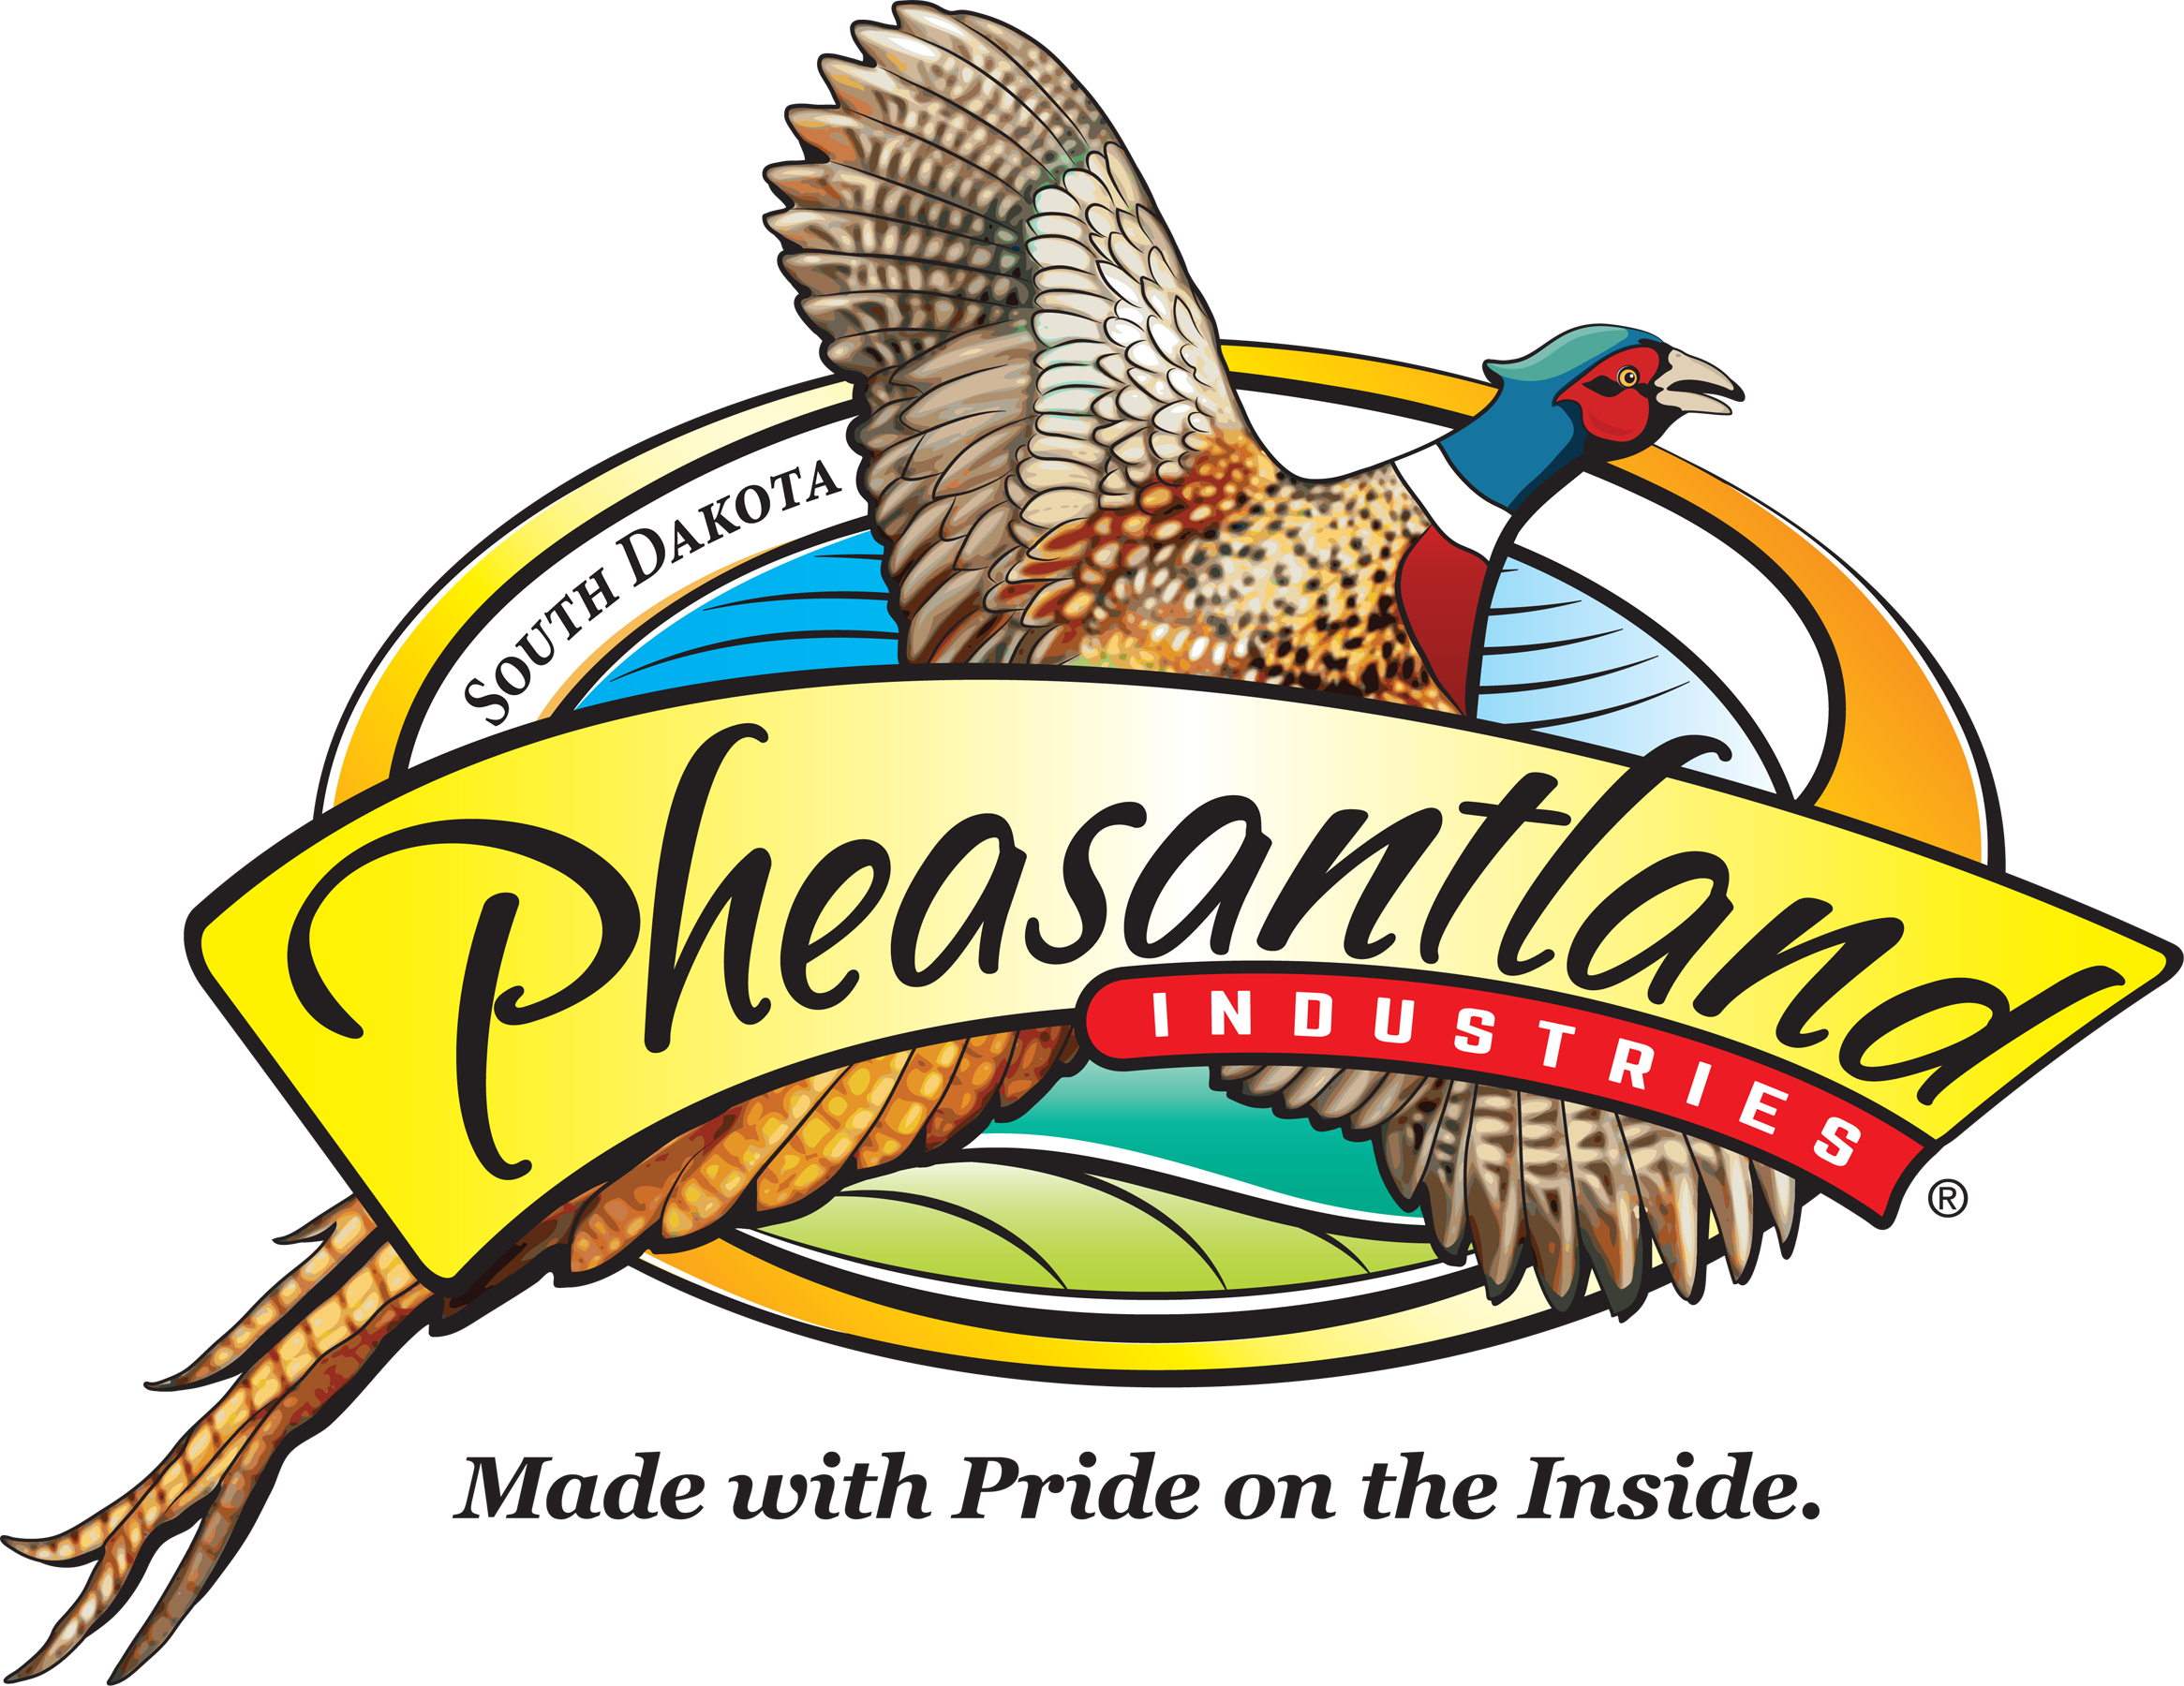 Pheasant Land Industries